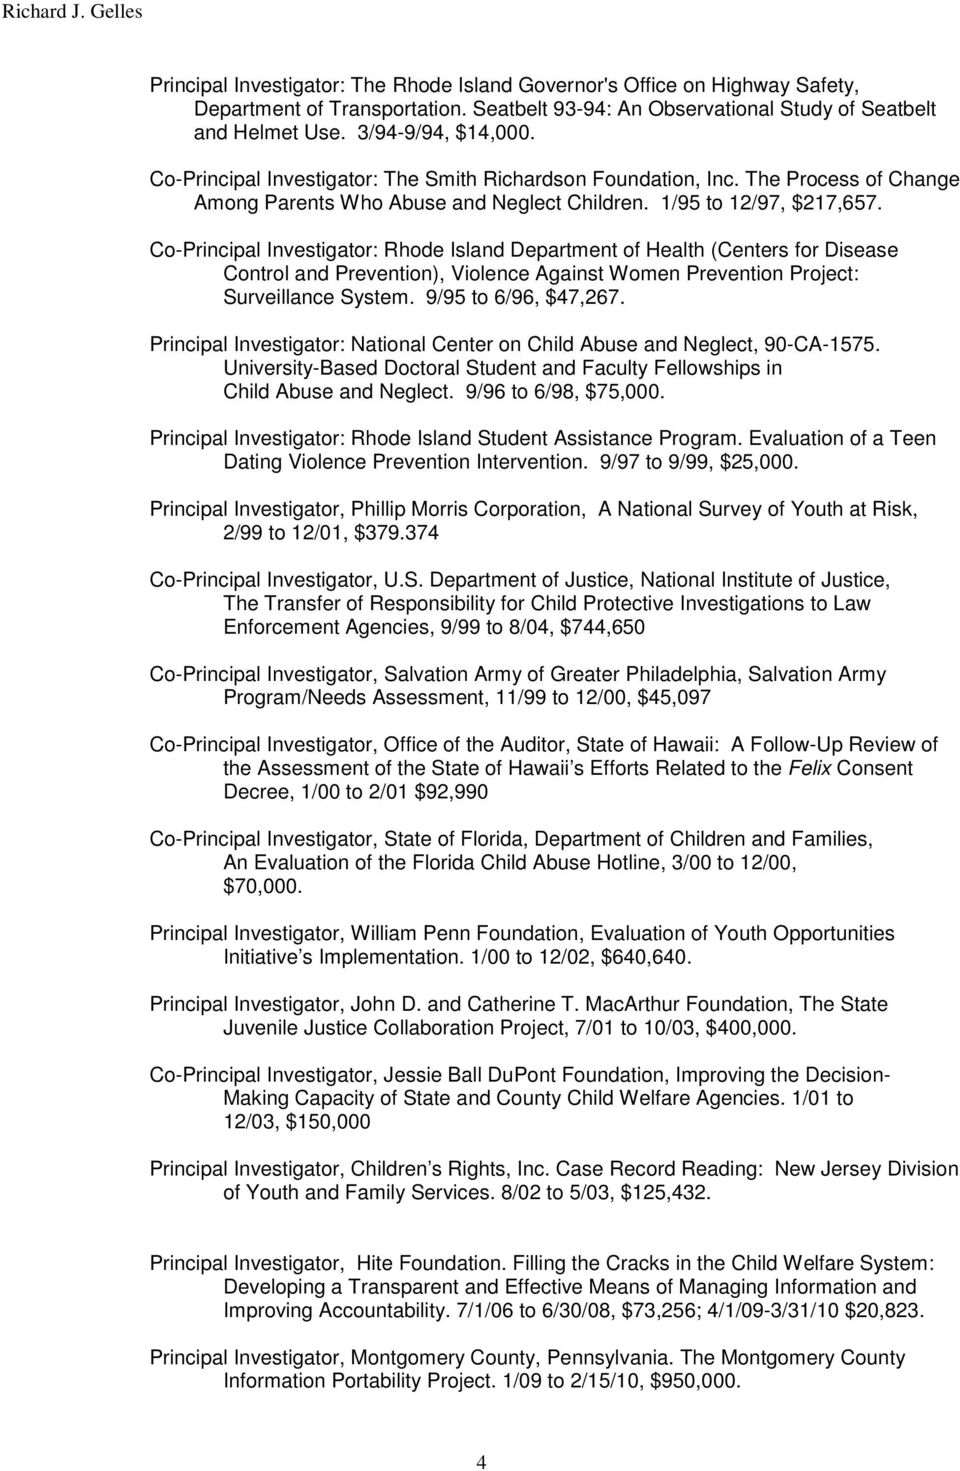 Co-Principal Investigator: Rhode Island Department of Health (Centers for Disease Control and Prevention), Violence Against Women Prevention Project: Surveillance System. 9/95 to 6/96, $47,267.